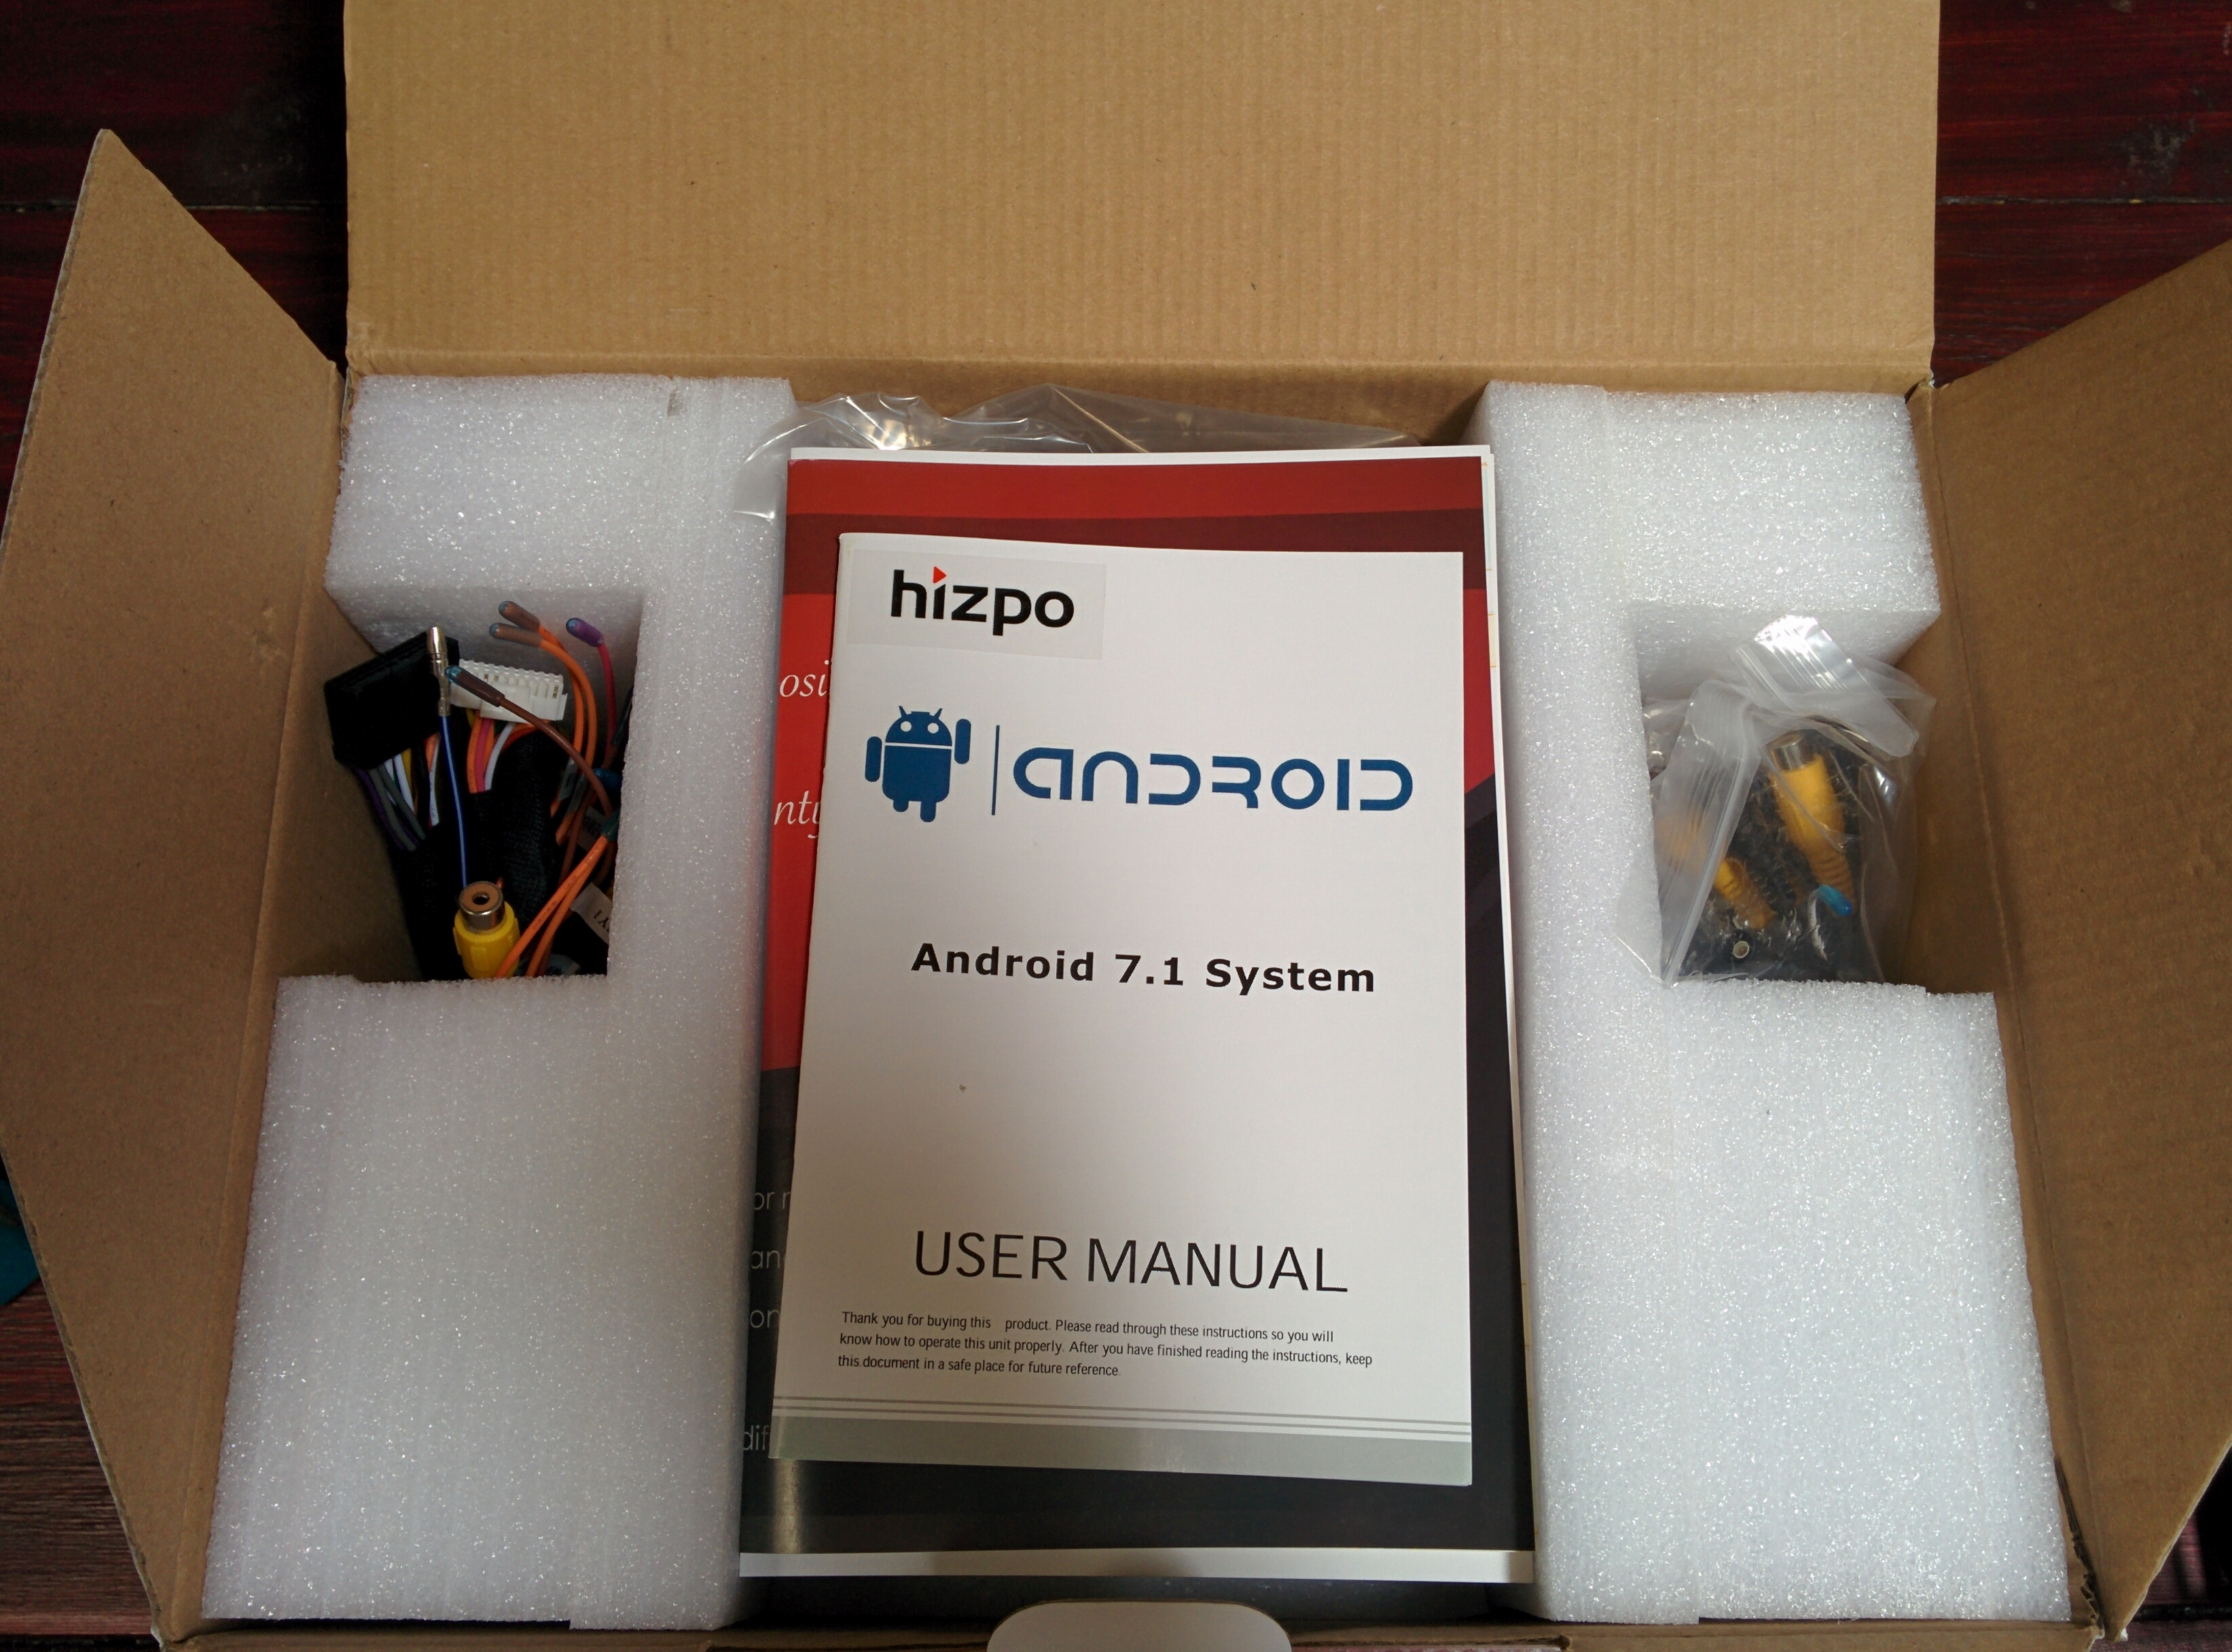 Hizpo Android 7.1 head Unit on 9.2 speaker placement diagram, 9.2 surround sound diagram, home theater setup diagram, the 5 channels of distribution diagram, system interface diagram, telecommunications network diagram,